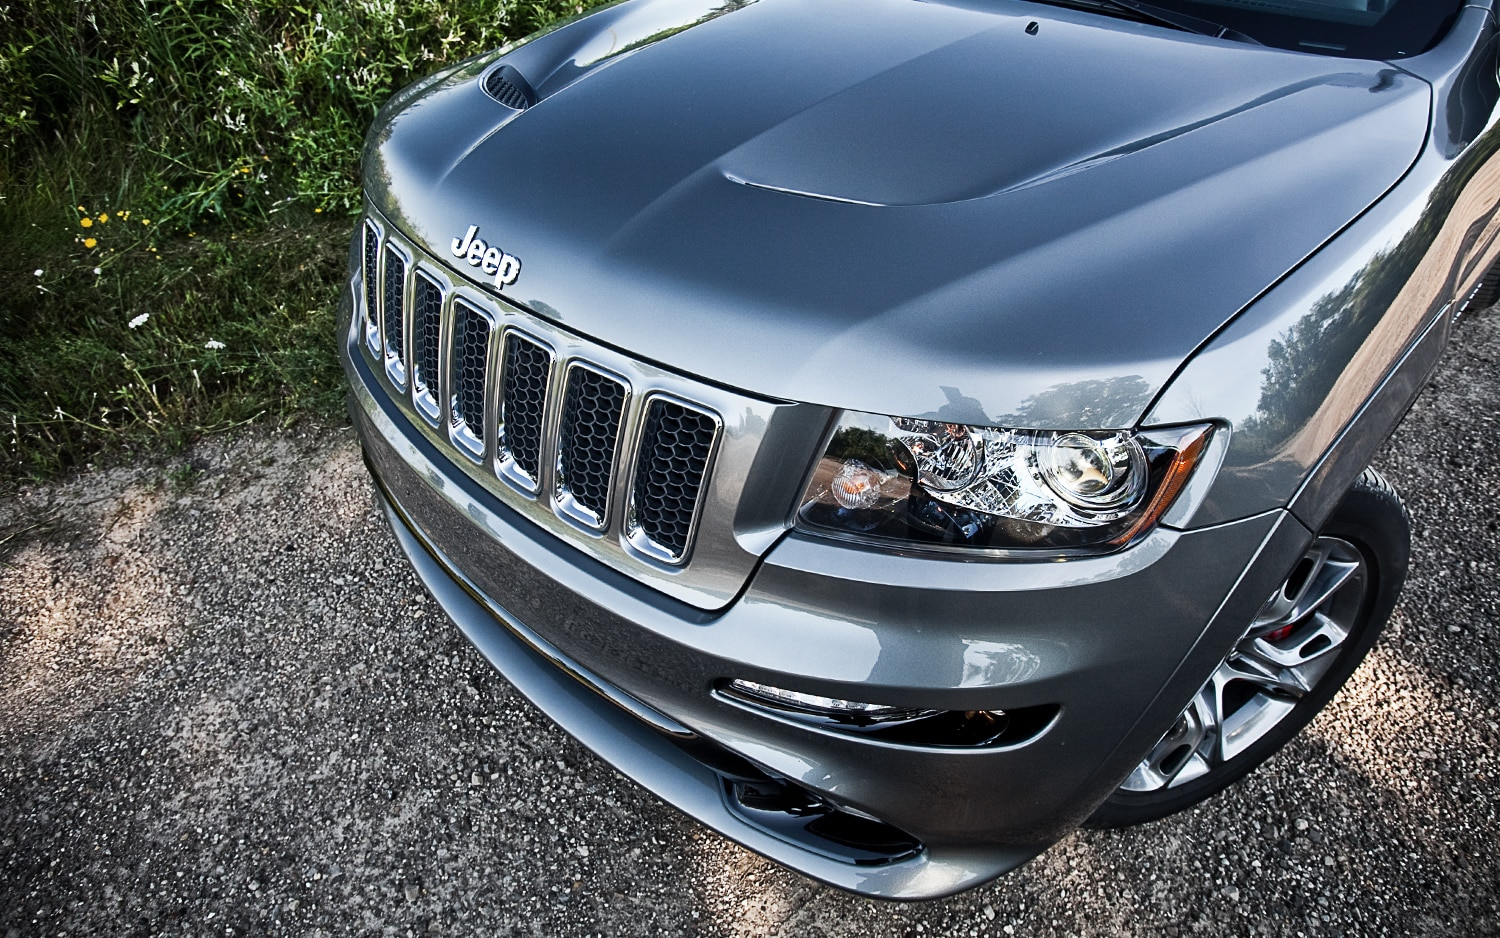 2012 Jeep Grand Cherokee Srt8 Editors Notebook